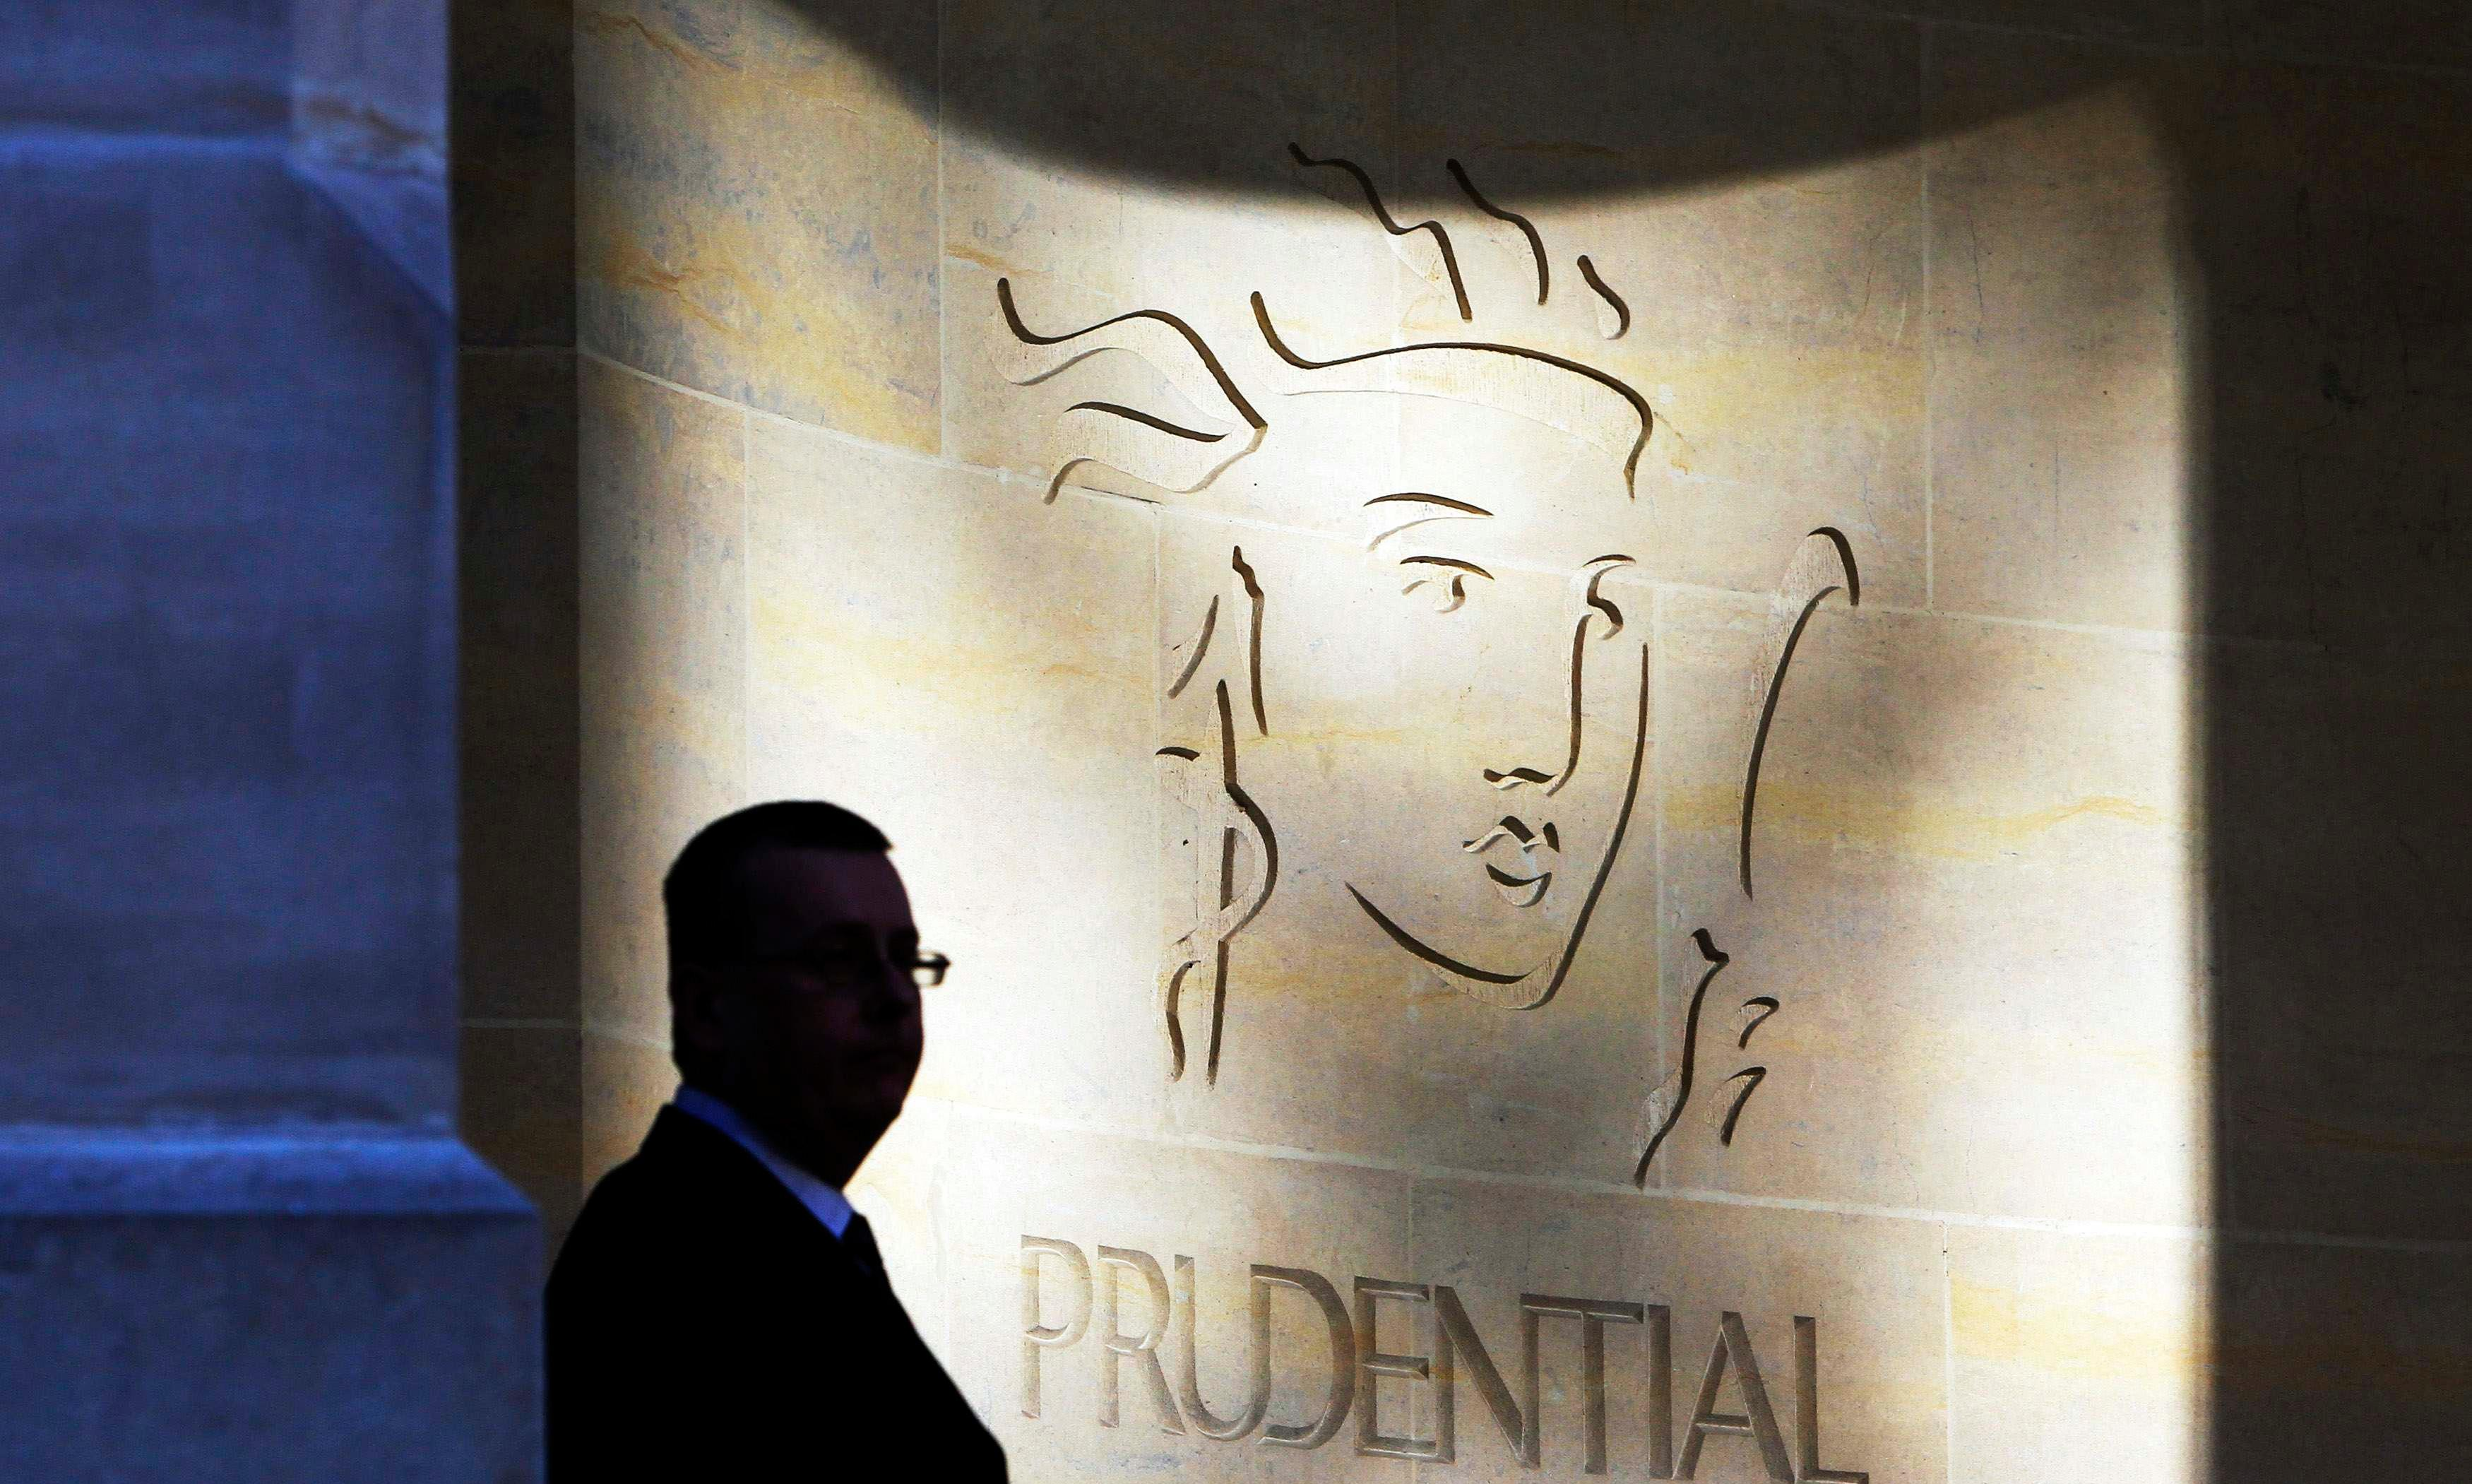 Prudential fined £24m for annuities sales failings